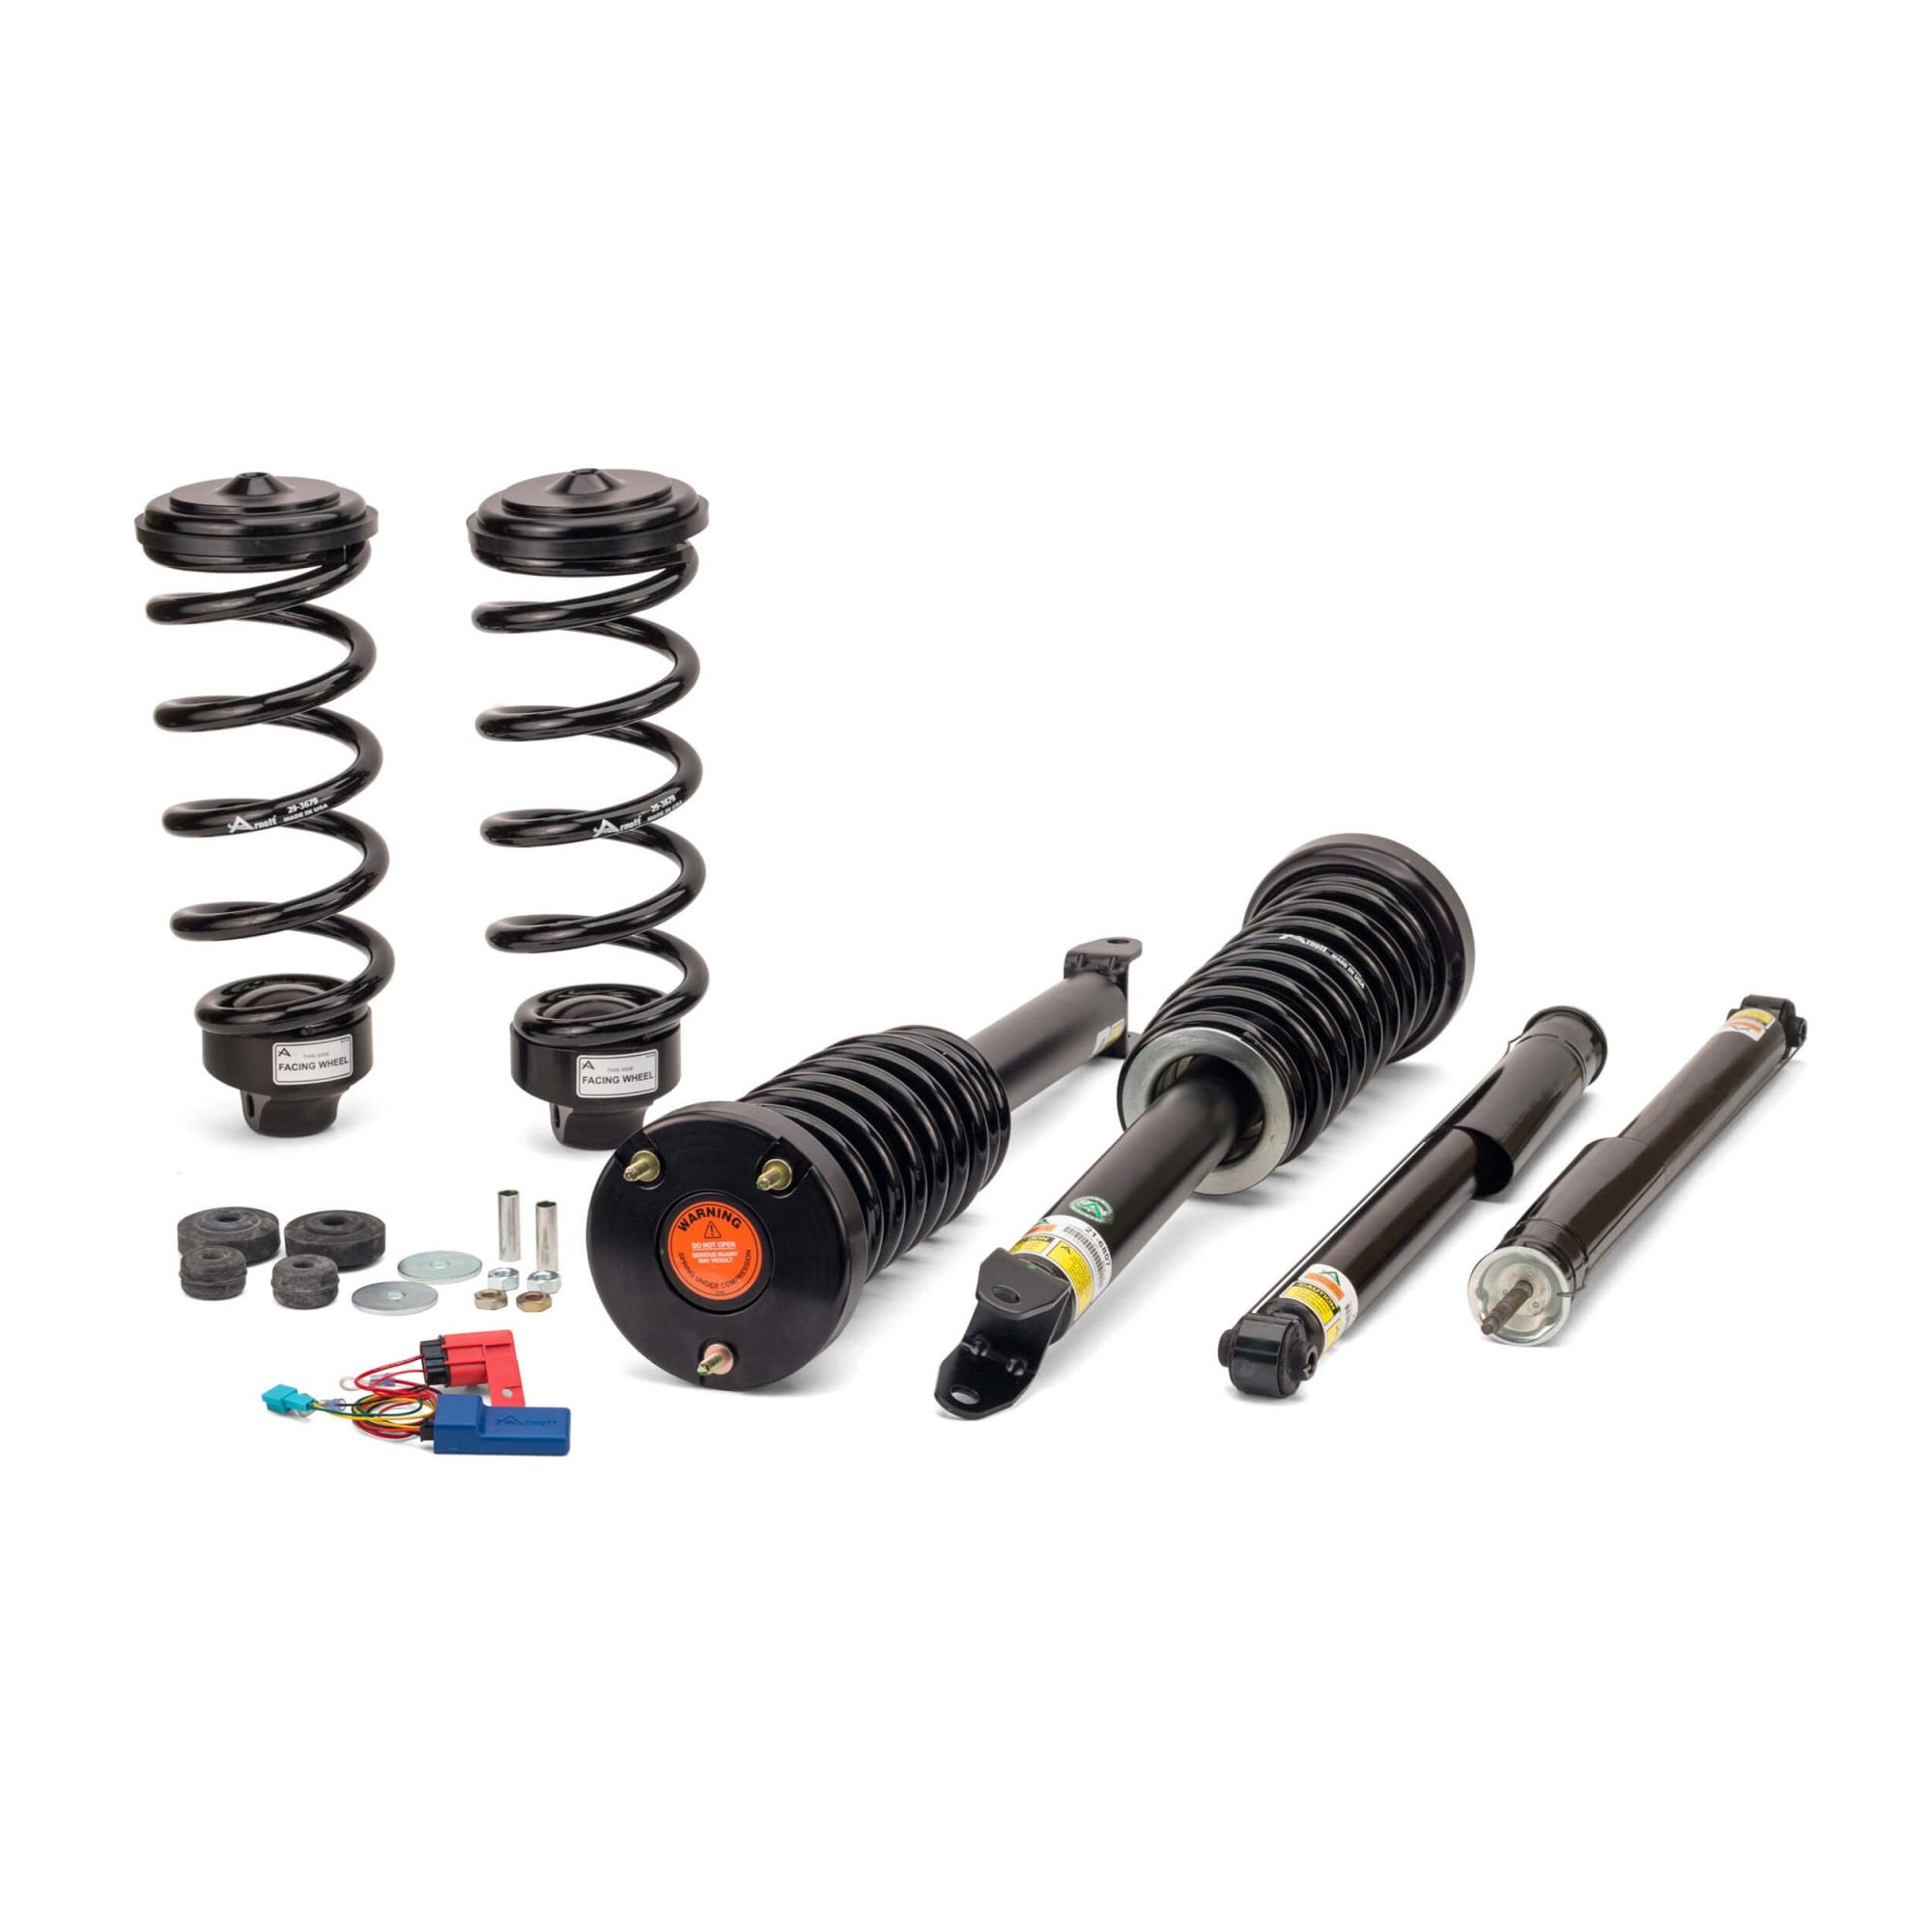 hight resolution of arnott new coil spring conversion kit w ebm mercedes benz 03 09 e class w211 05 11 cls class w219 w airmatic ads w o 4matic excl wagon